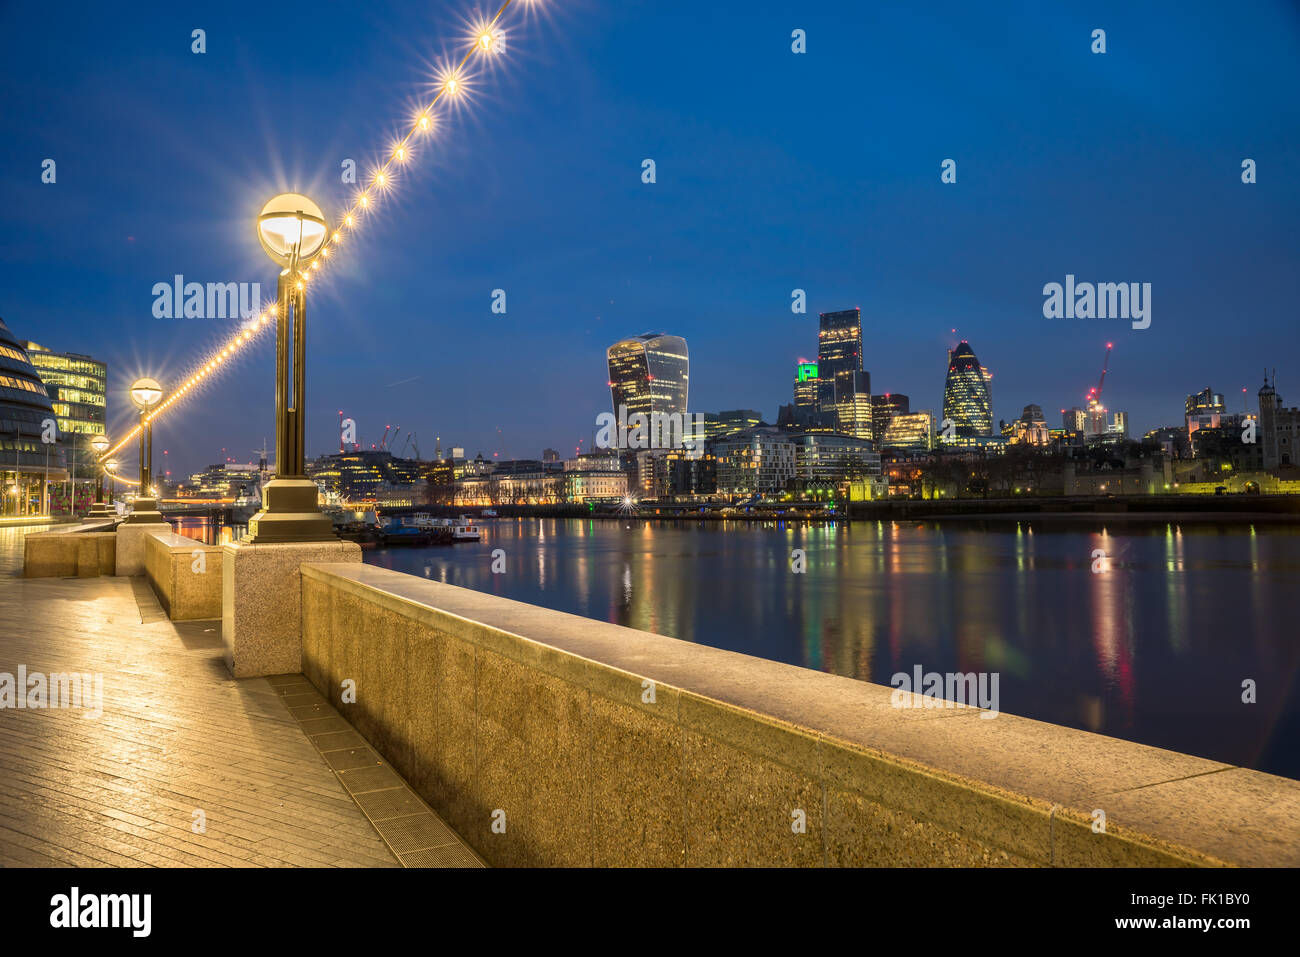 The london Skyline From The Thames - Stock Image